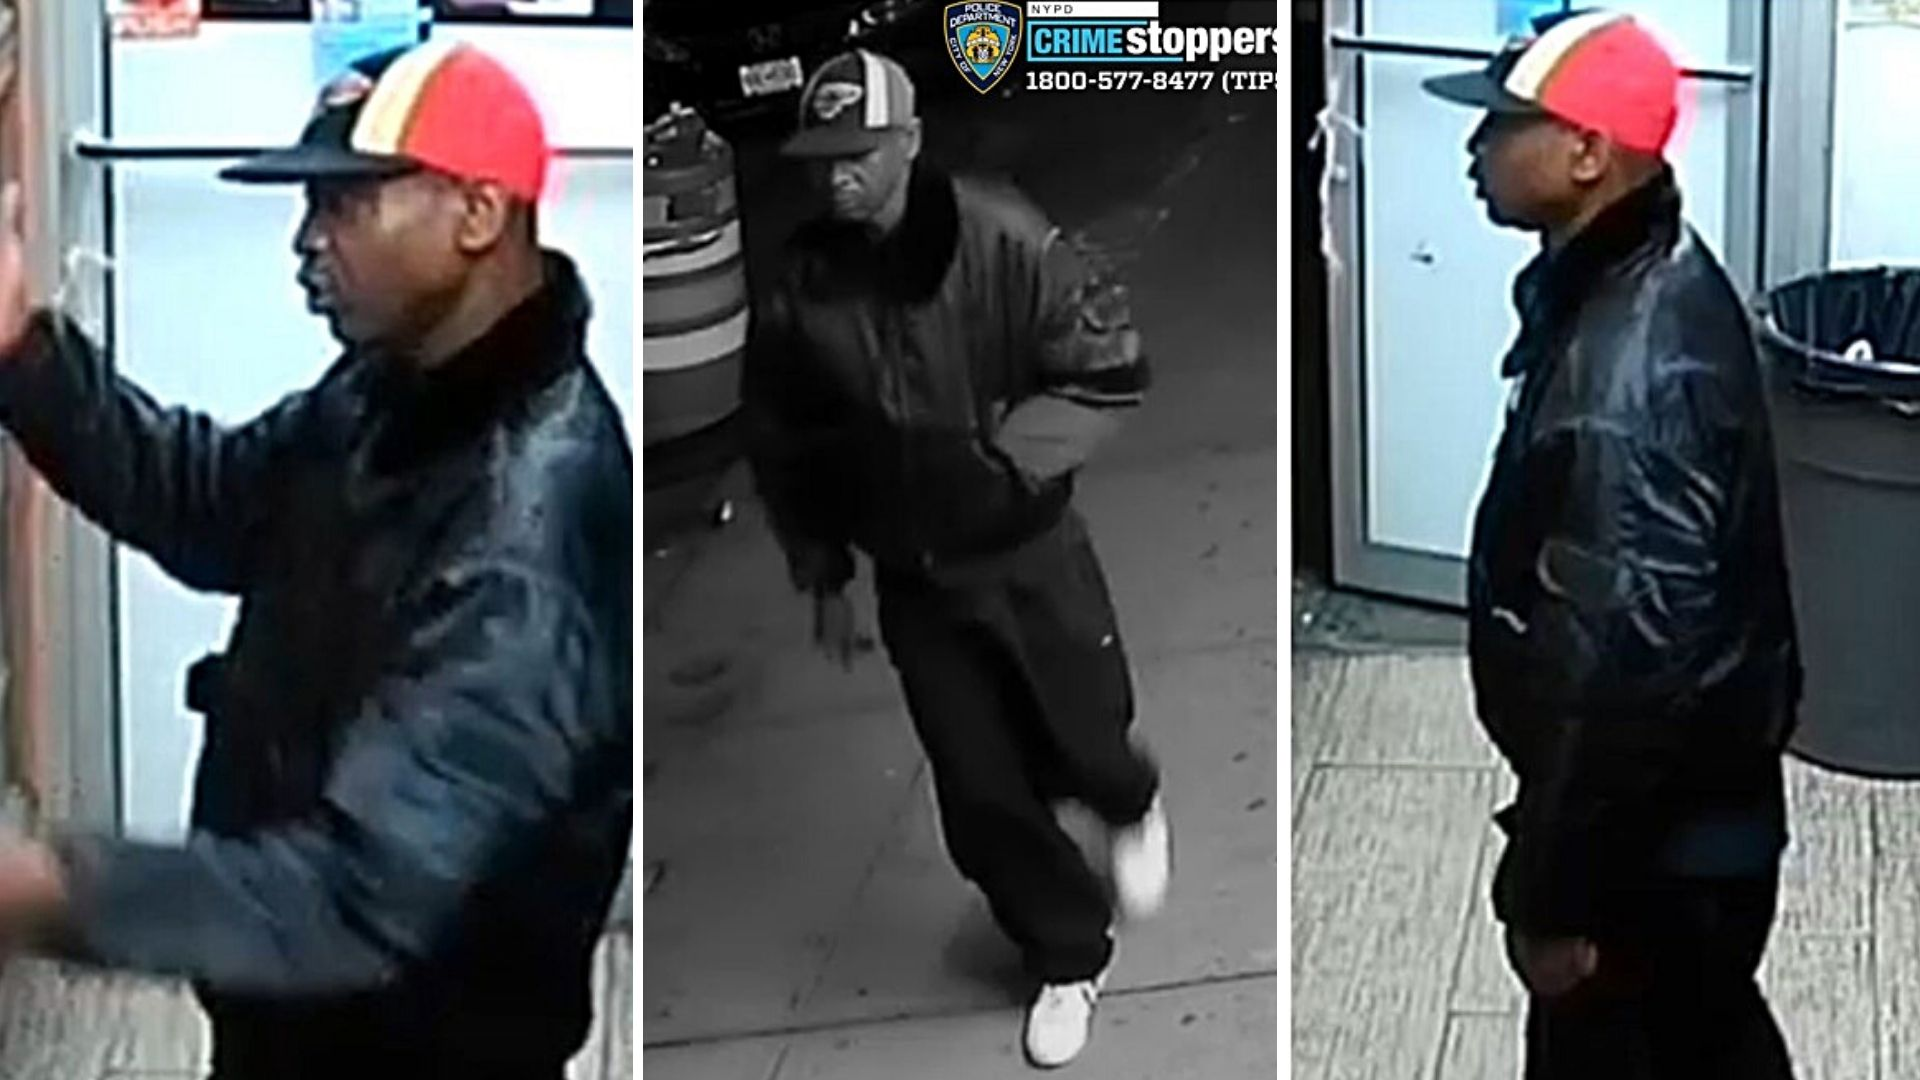 Surveillance images of an unidentified man police are looking for after a 61-year-old Asian man was attacked in the East Harlem area of Manhattan on Friday, April 23, 2021.